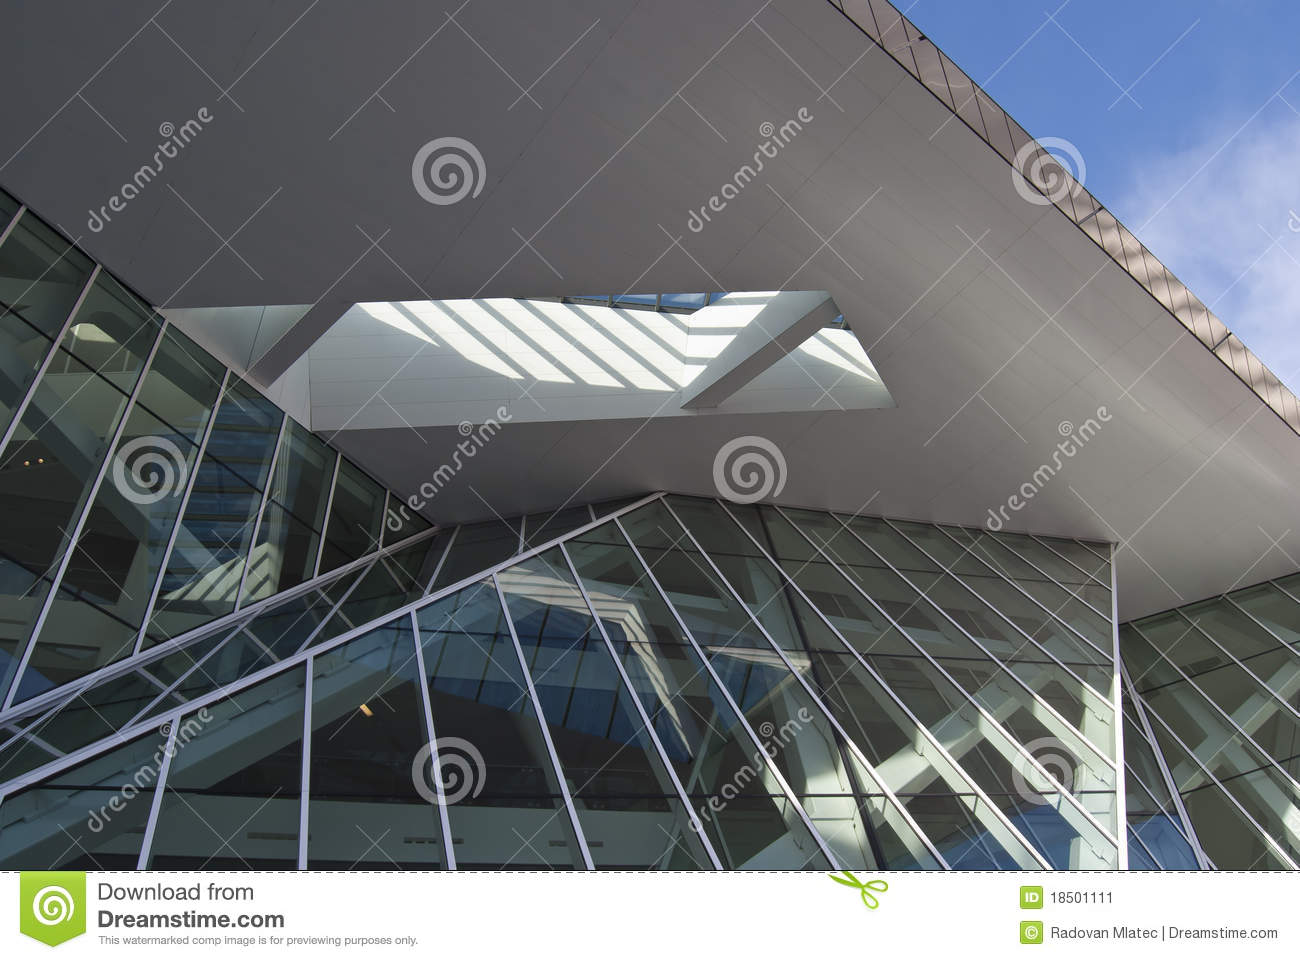 modern building design stock image - image: 18501111